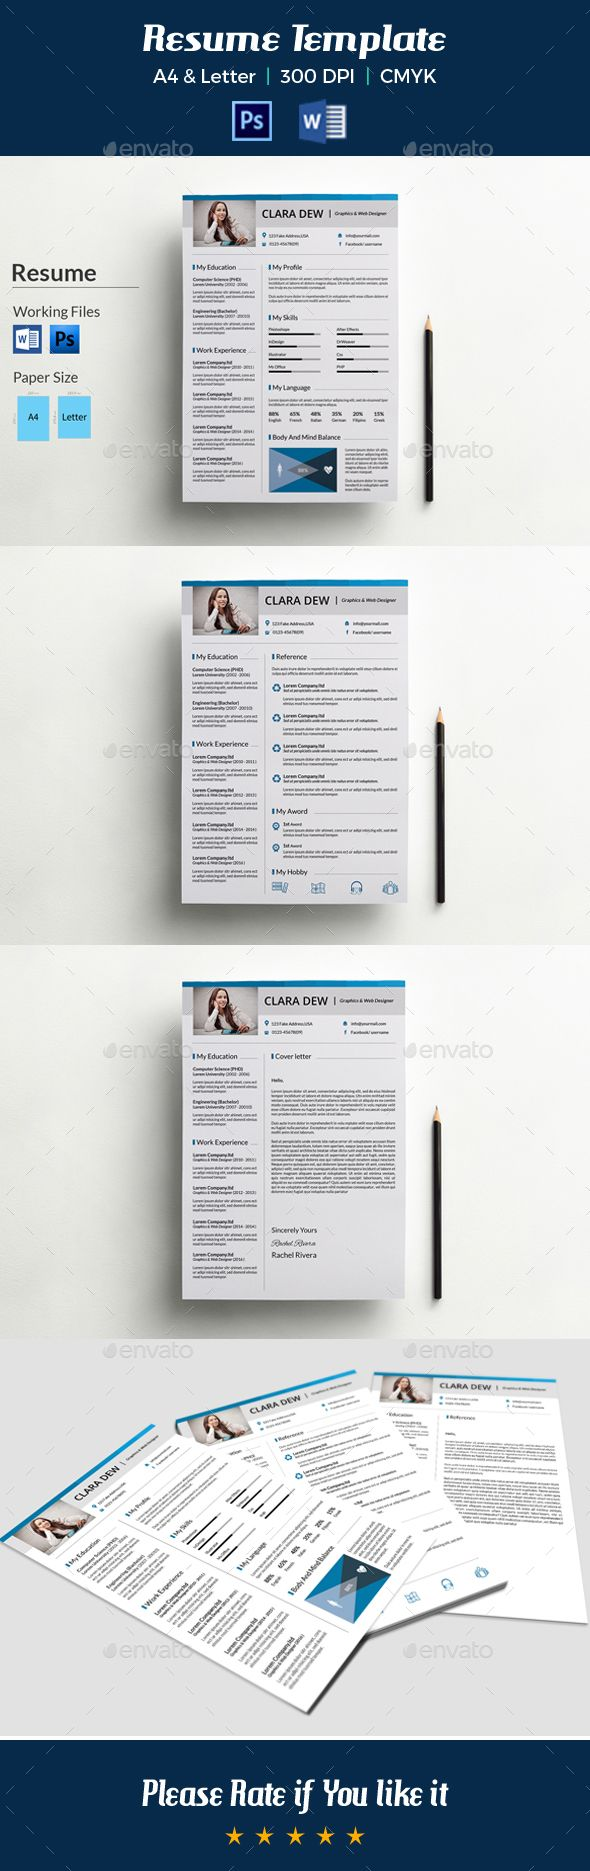 best 25  biodata format download ideas on pinterest